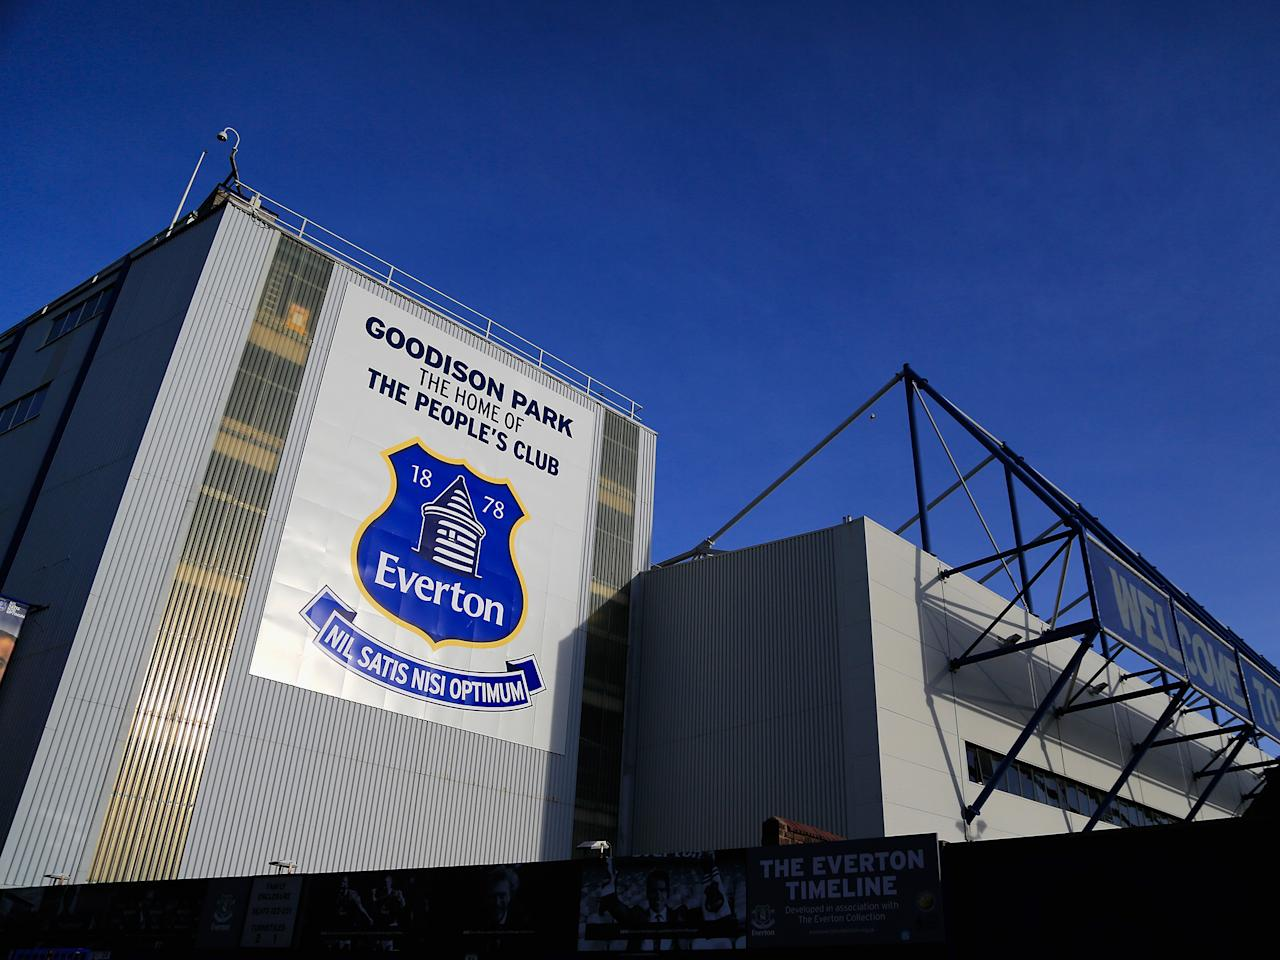 Everton to buy house for homeless teenagers after community scheme raises £230,000